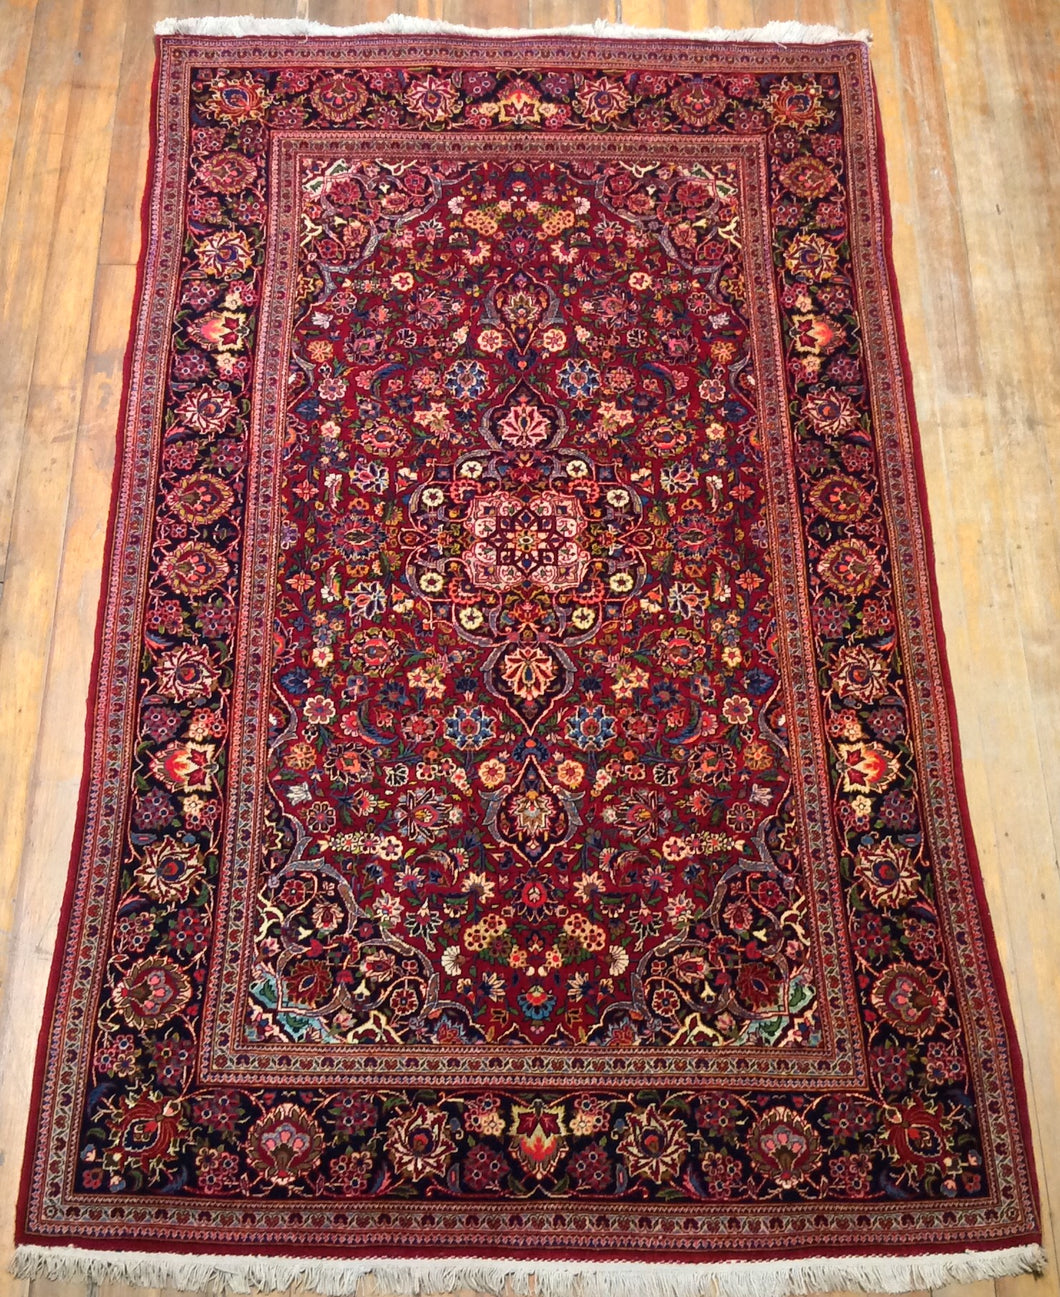 V. Fine Persian Wool & Silk Semi Antique Persian Kashan Rug. 7' x 4'.3